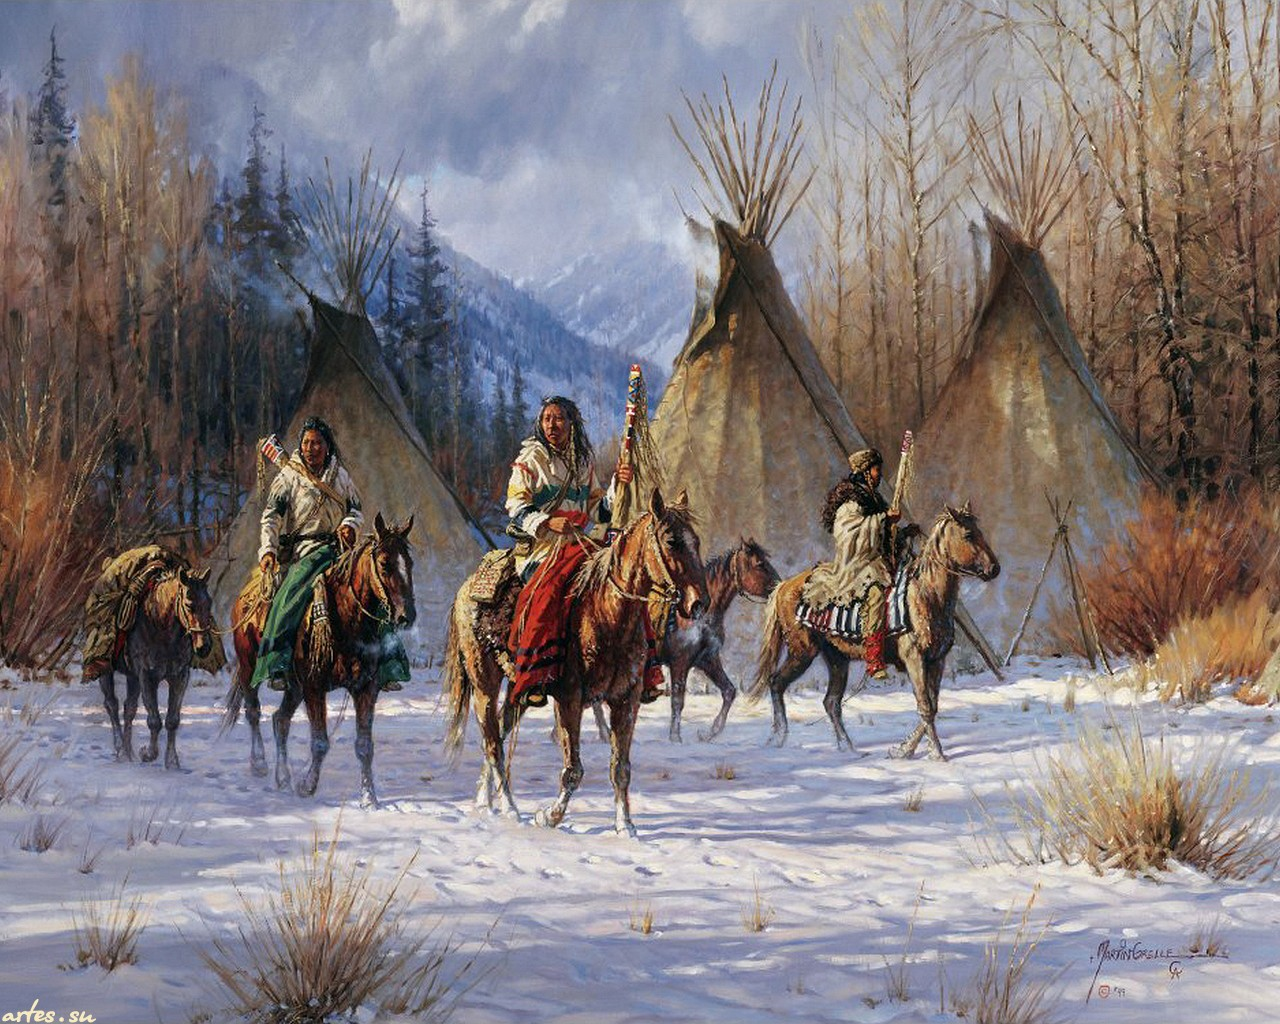 Native American Computer Wallpapers Desktop Backgrounds 1280x1024 1280x1024